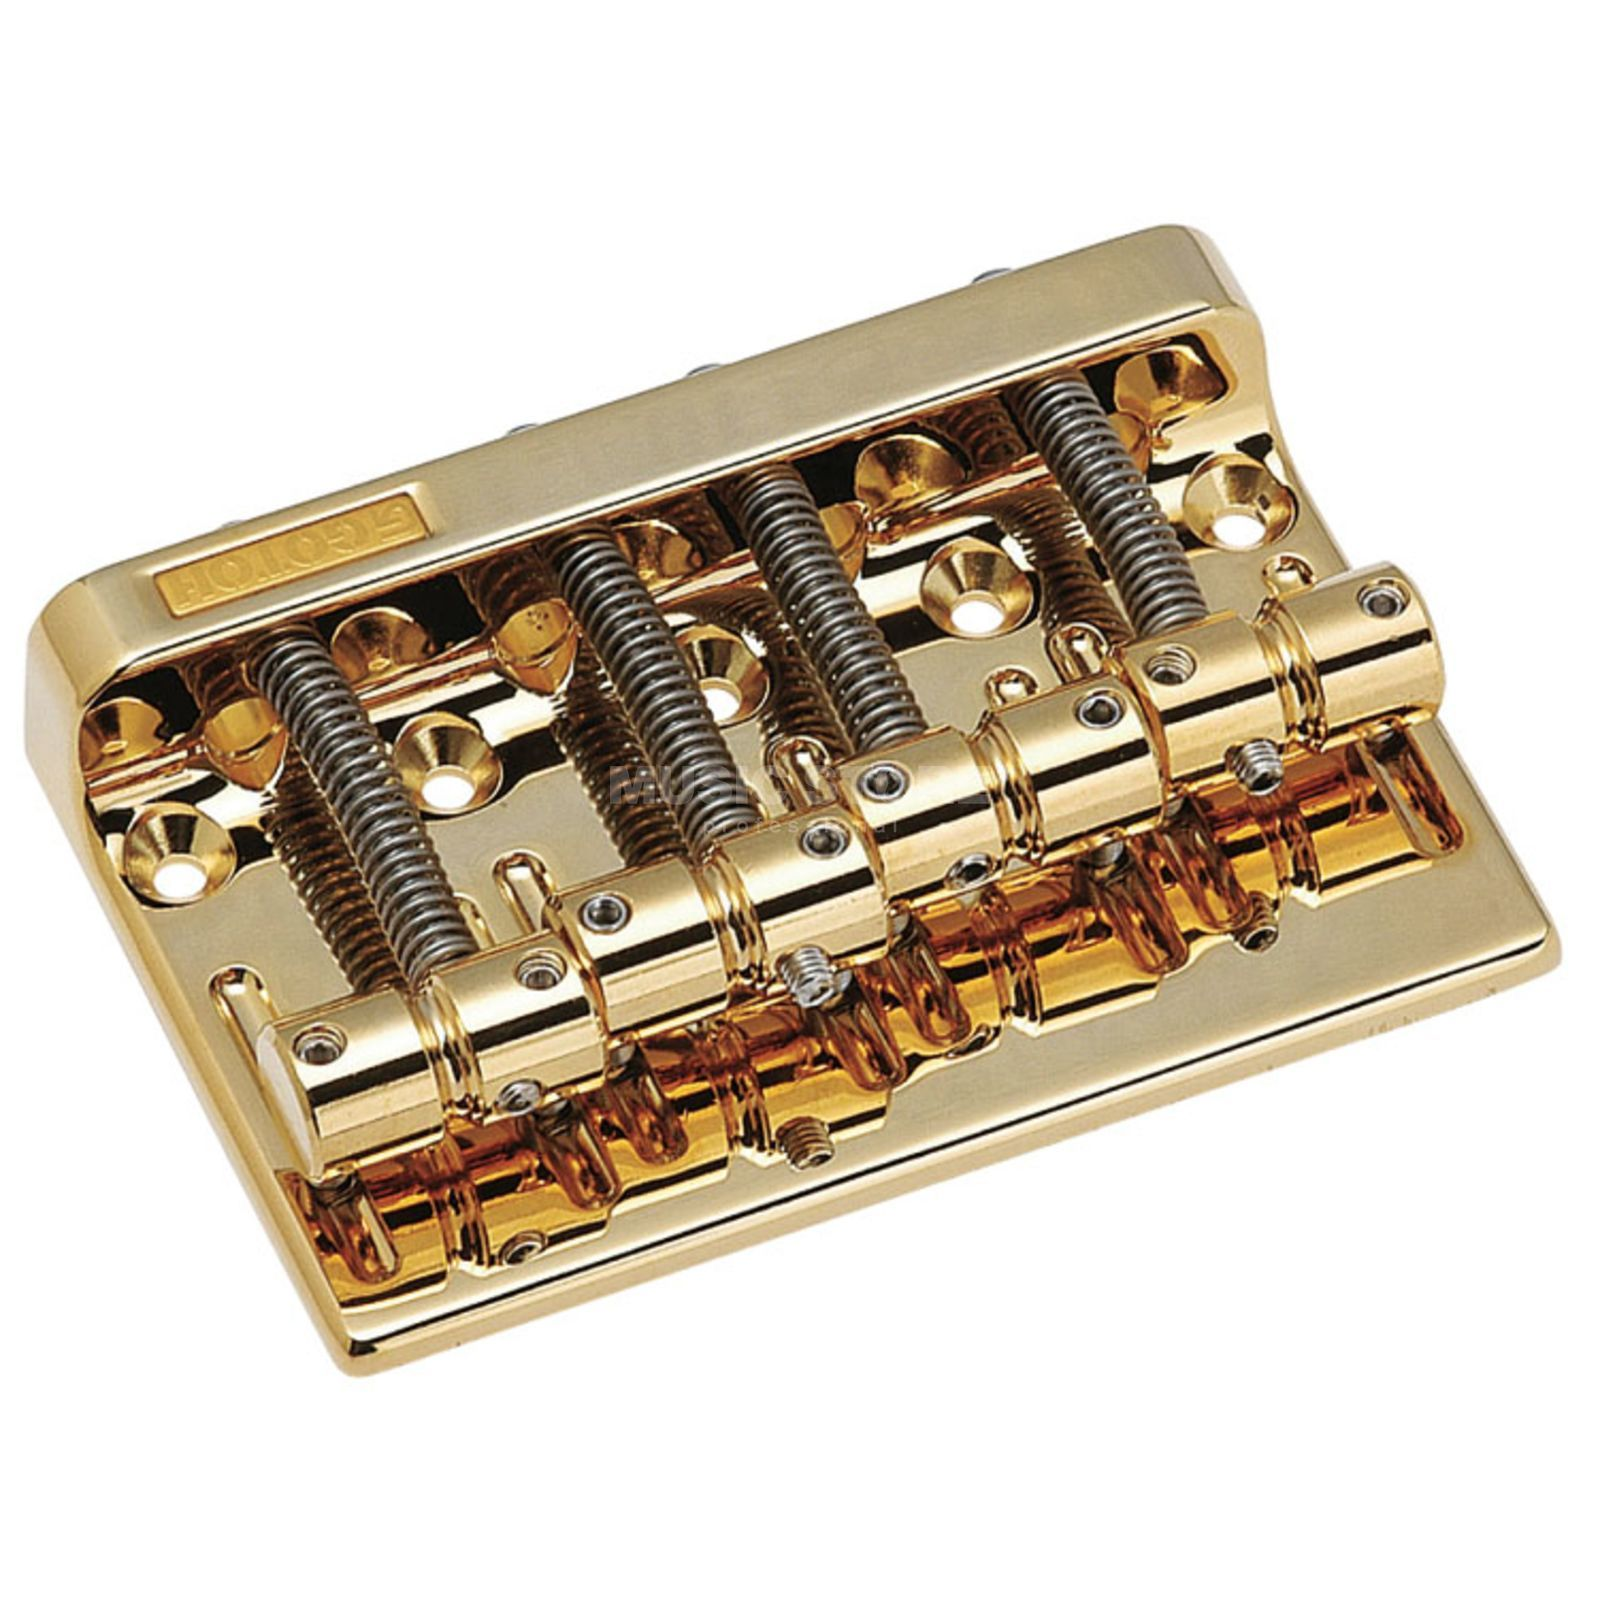 Gotoh Bass Bridge 201-B4 Gold Produktbild